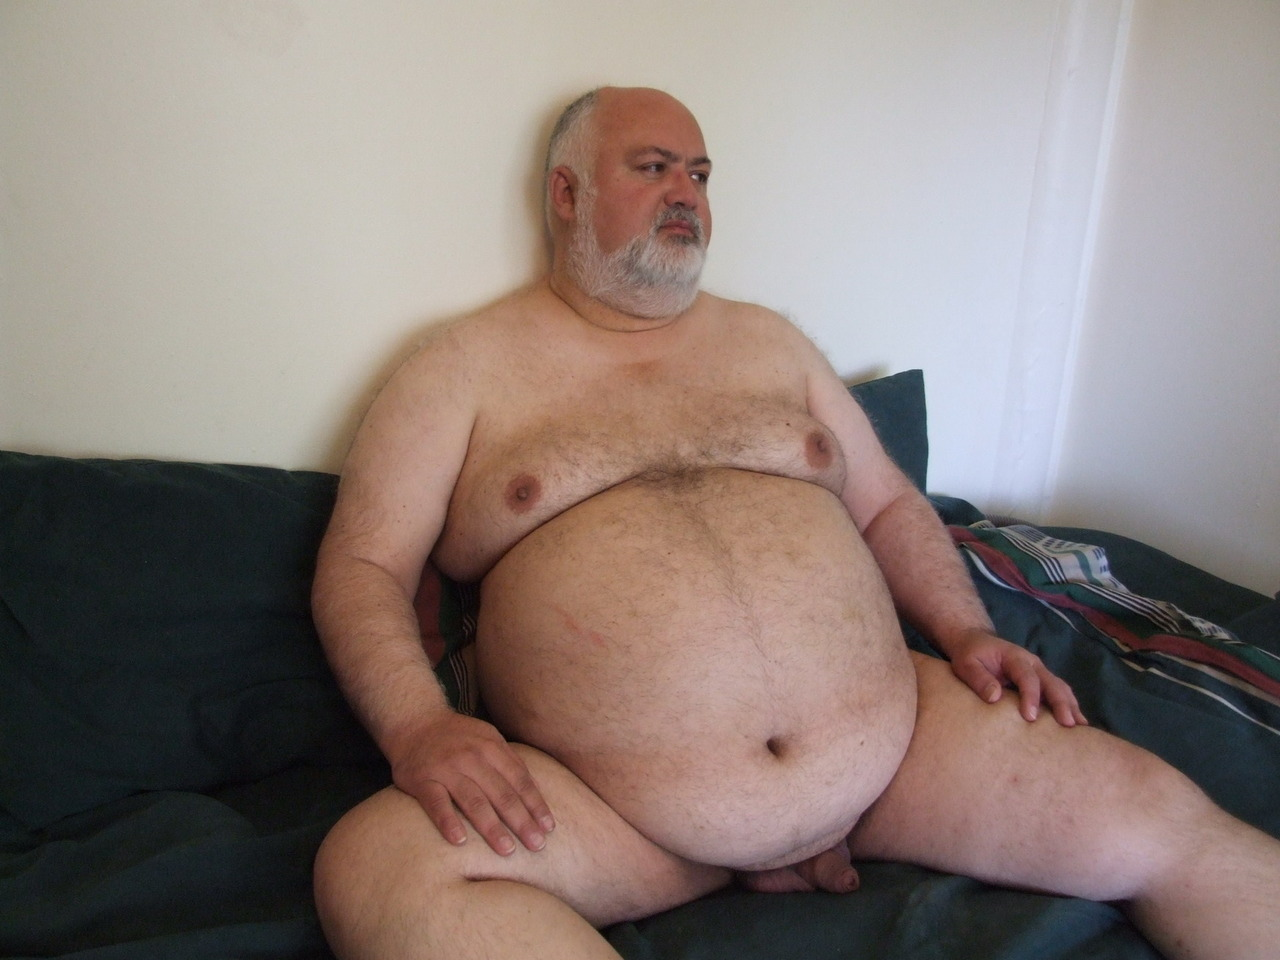 Chubby Men Porn Videos - fat man porn